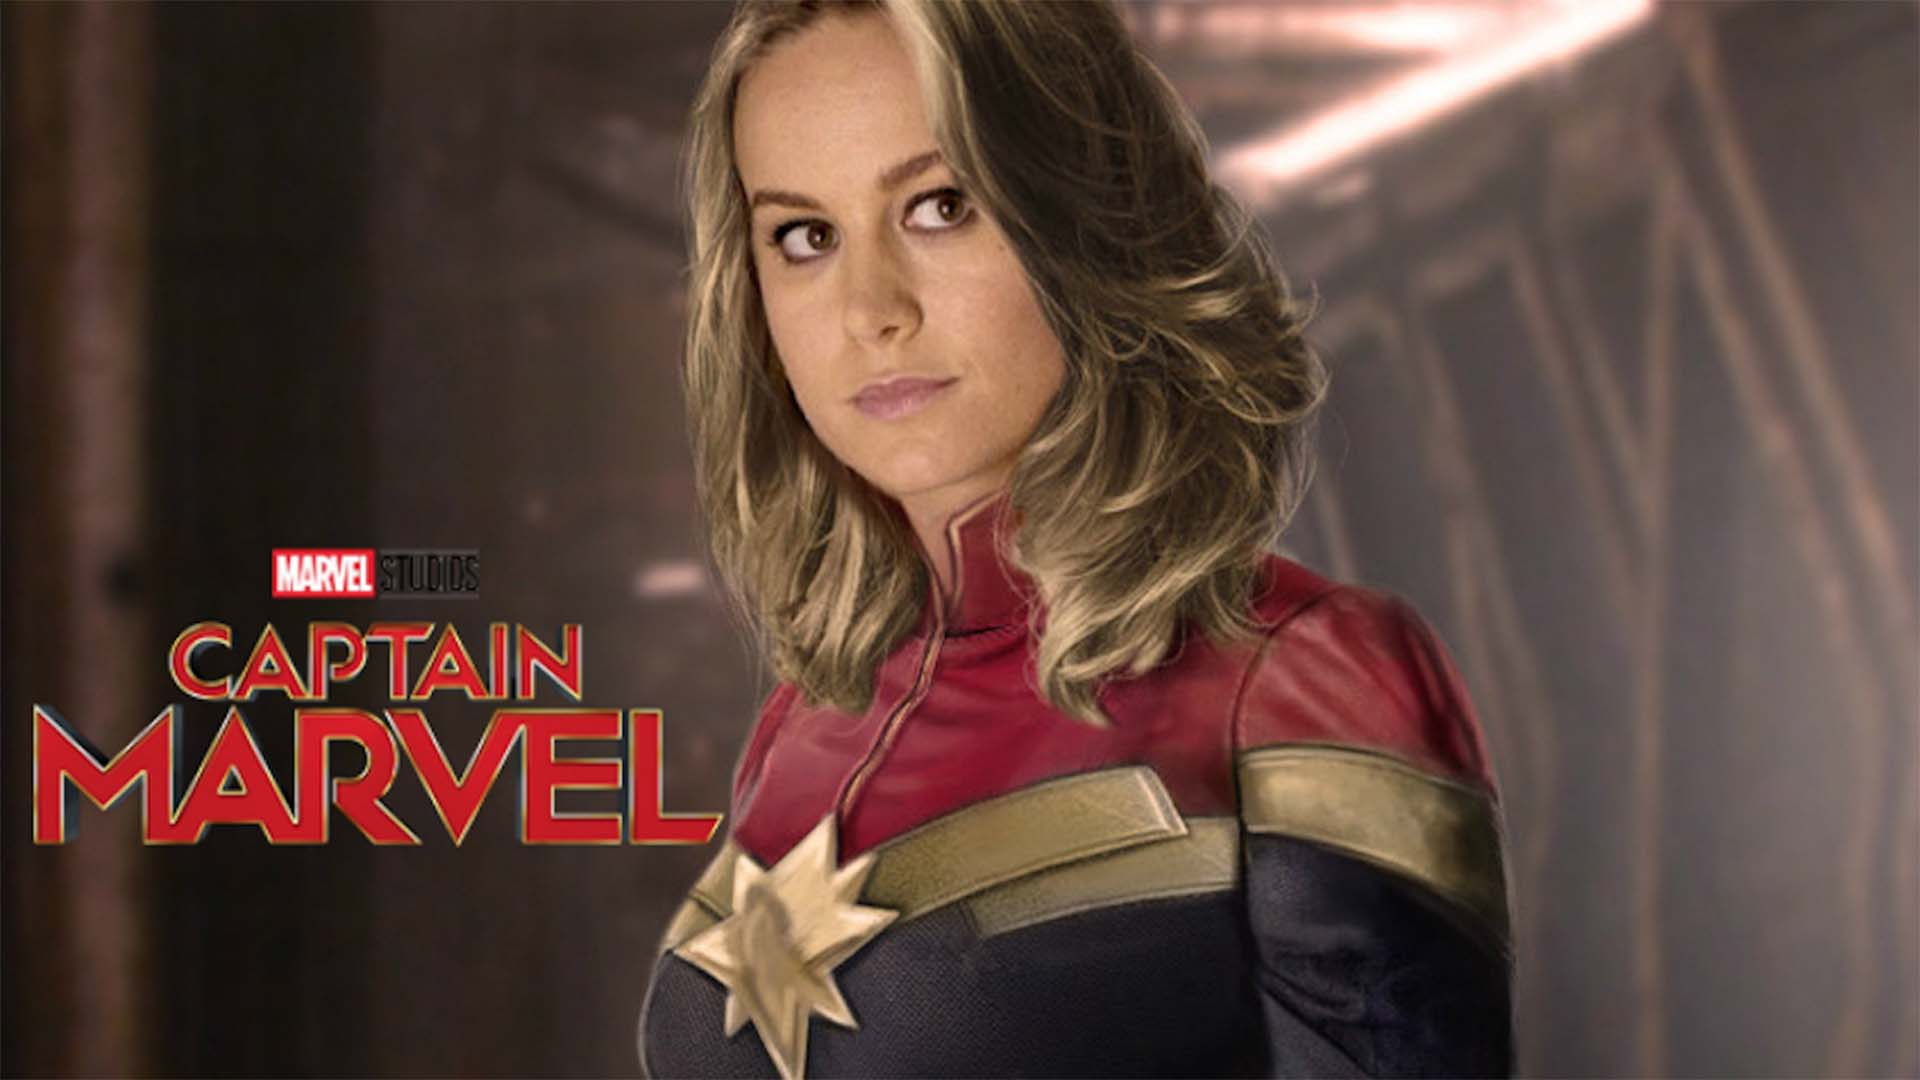 brie larson captain marvel avengers hd wallpaper